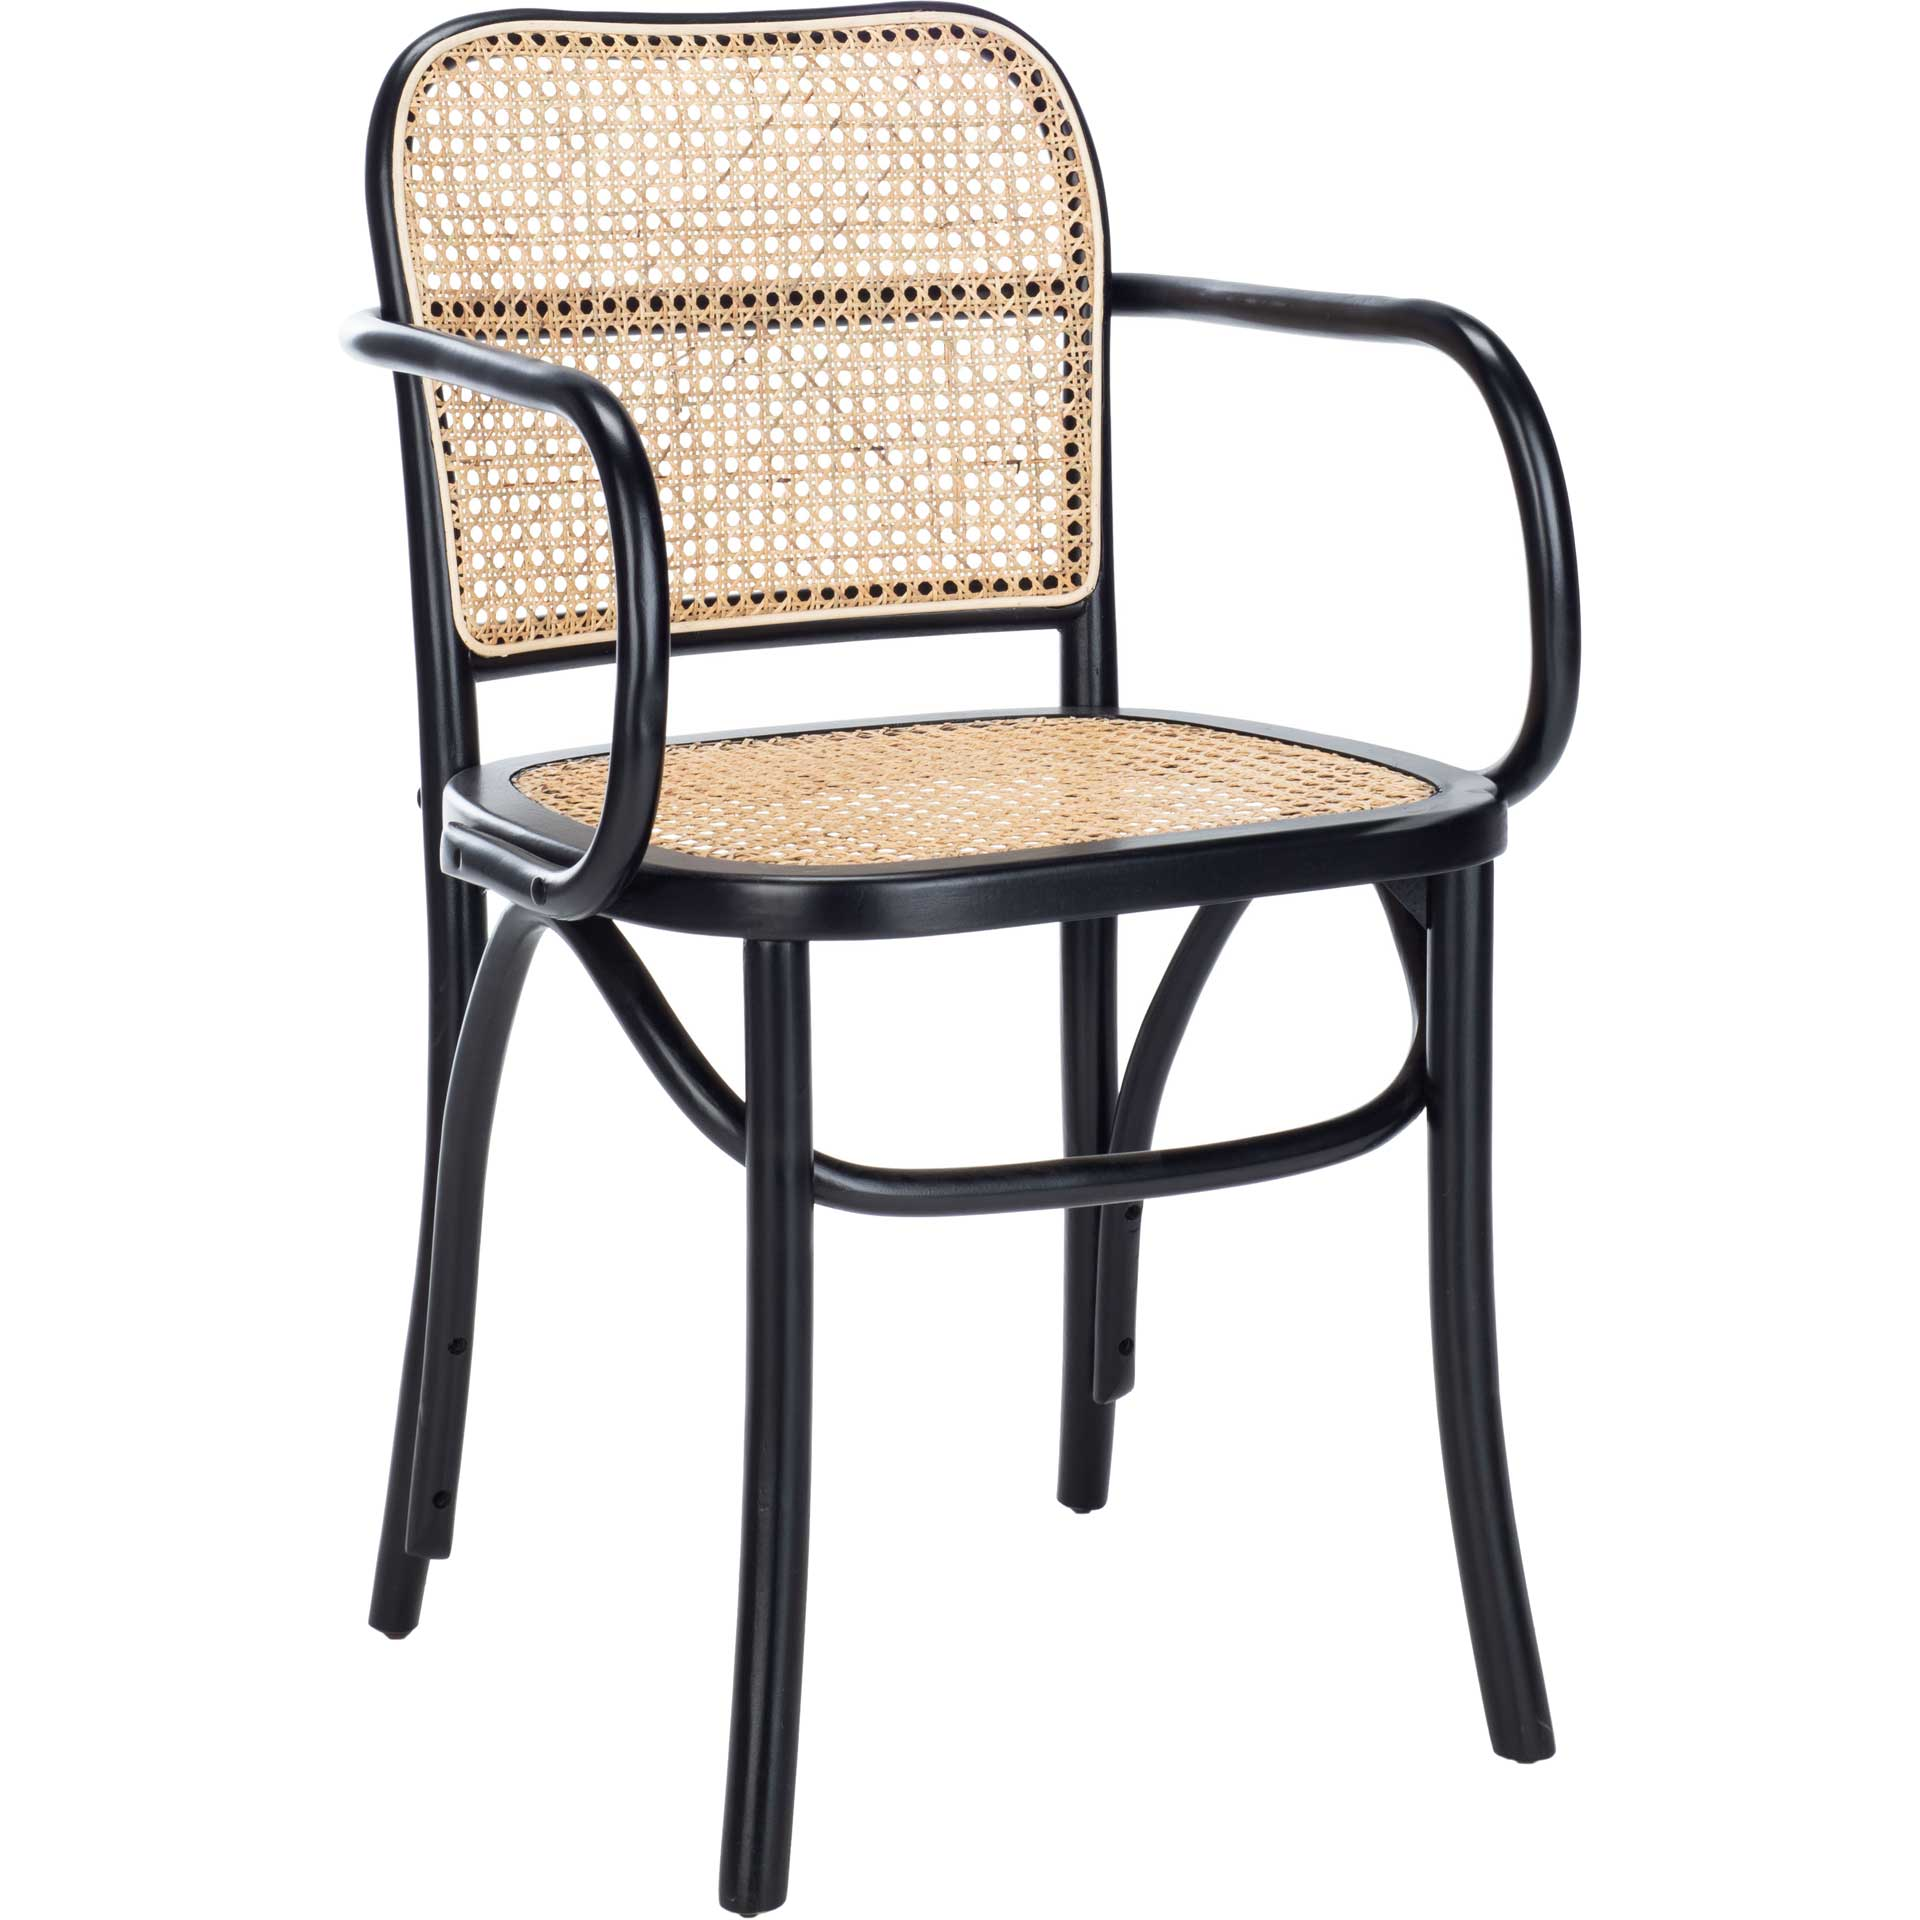 Keanu Cane Dining Chair Black/Natural